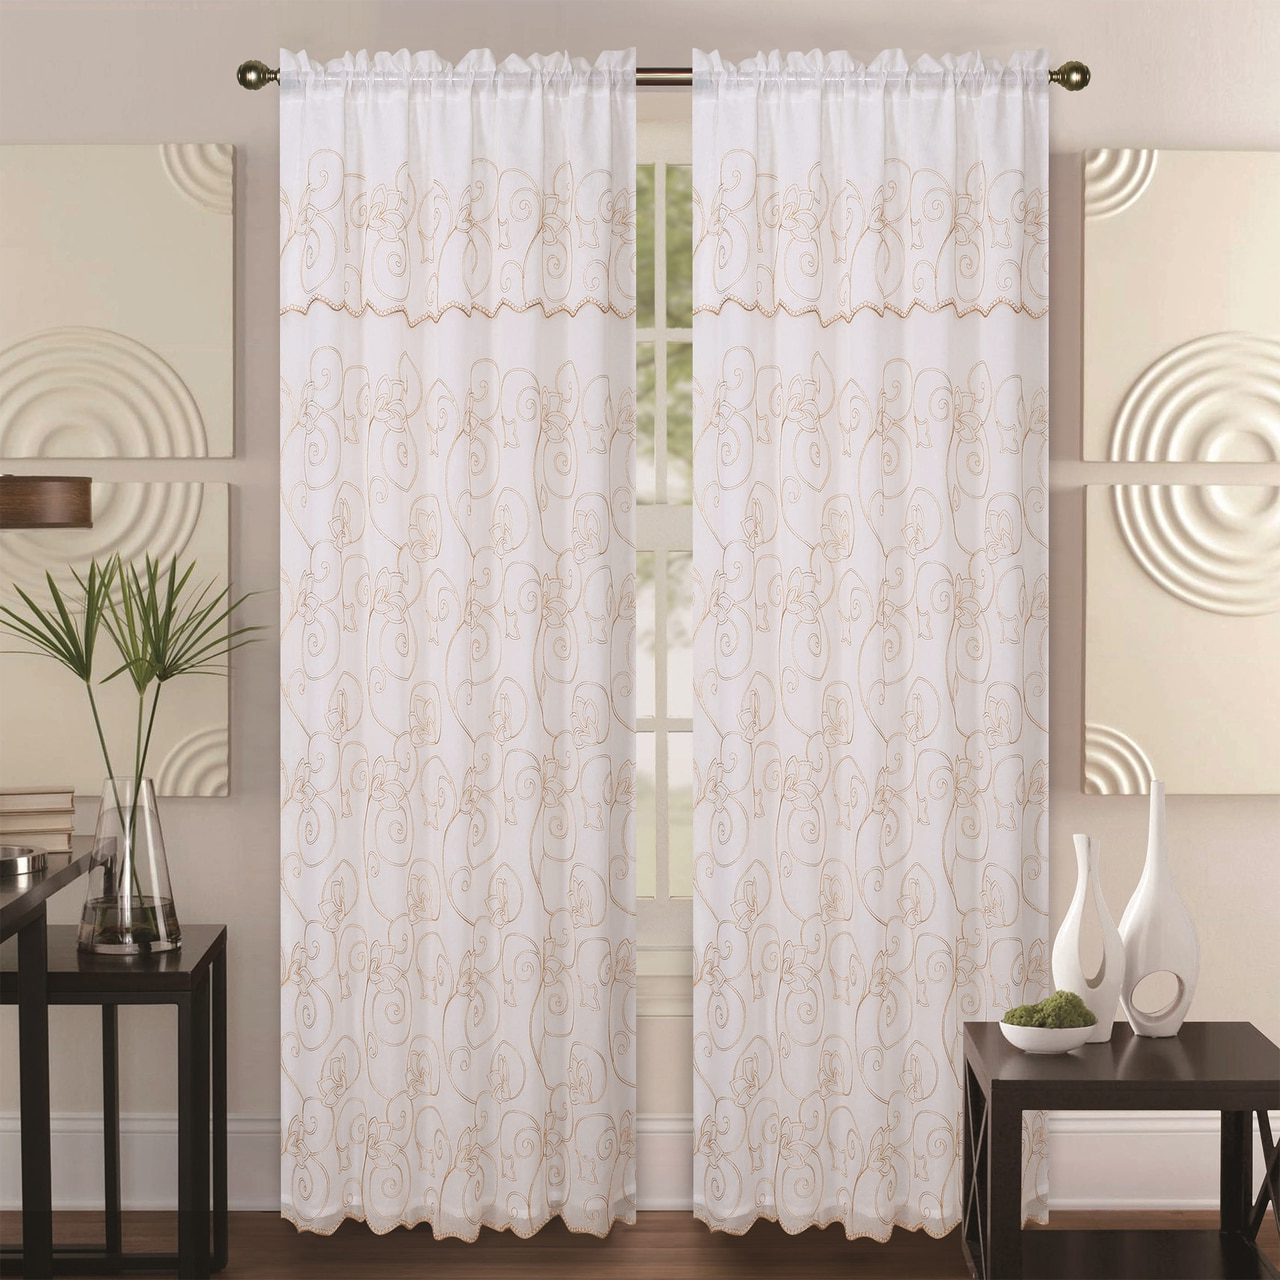 Popular Ofloral Embroidered Faux Silk Window Curtain Panels Regarding Double Layer Embroidery Floral Sheer Linen Front / Faux Silk Back Rod Pocket Valance Decorative Curtain Panel 55x84 Inch, Selma Single Drape Panel (View 8 of 20)